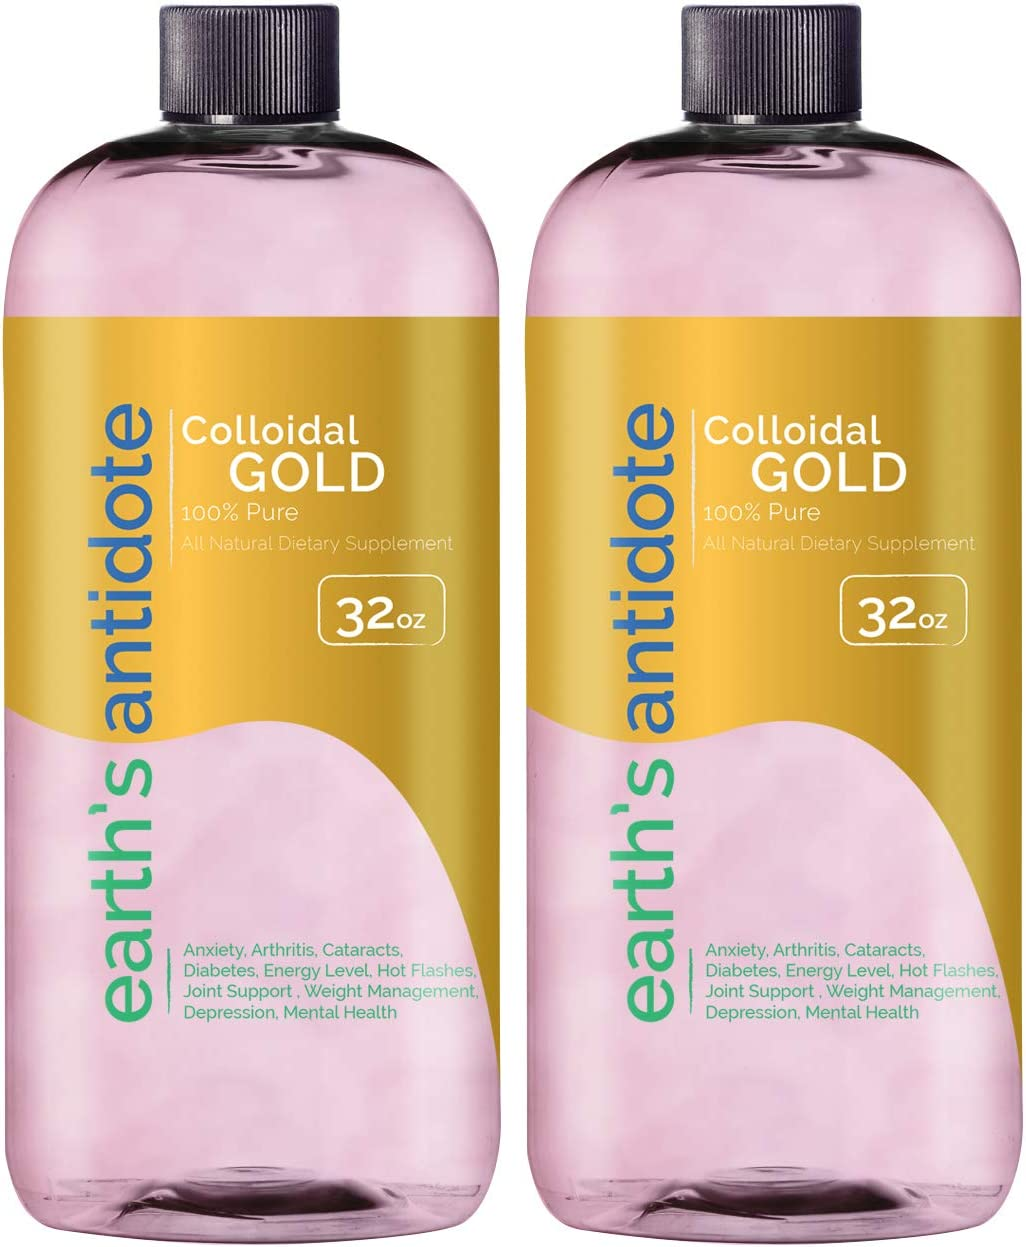 Earths We OFFer at cheap prices Antidote 1 year warranty Colloidal Gold 64oz